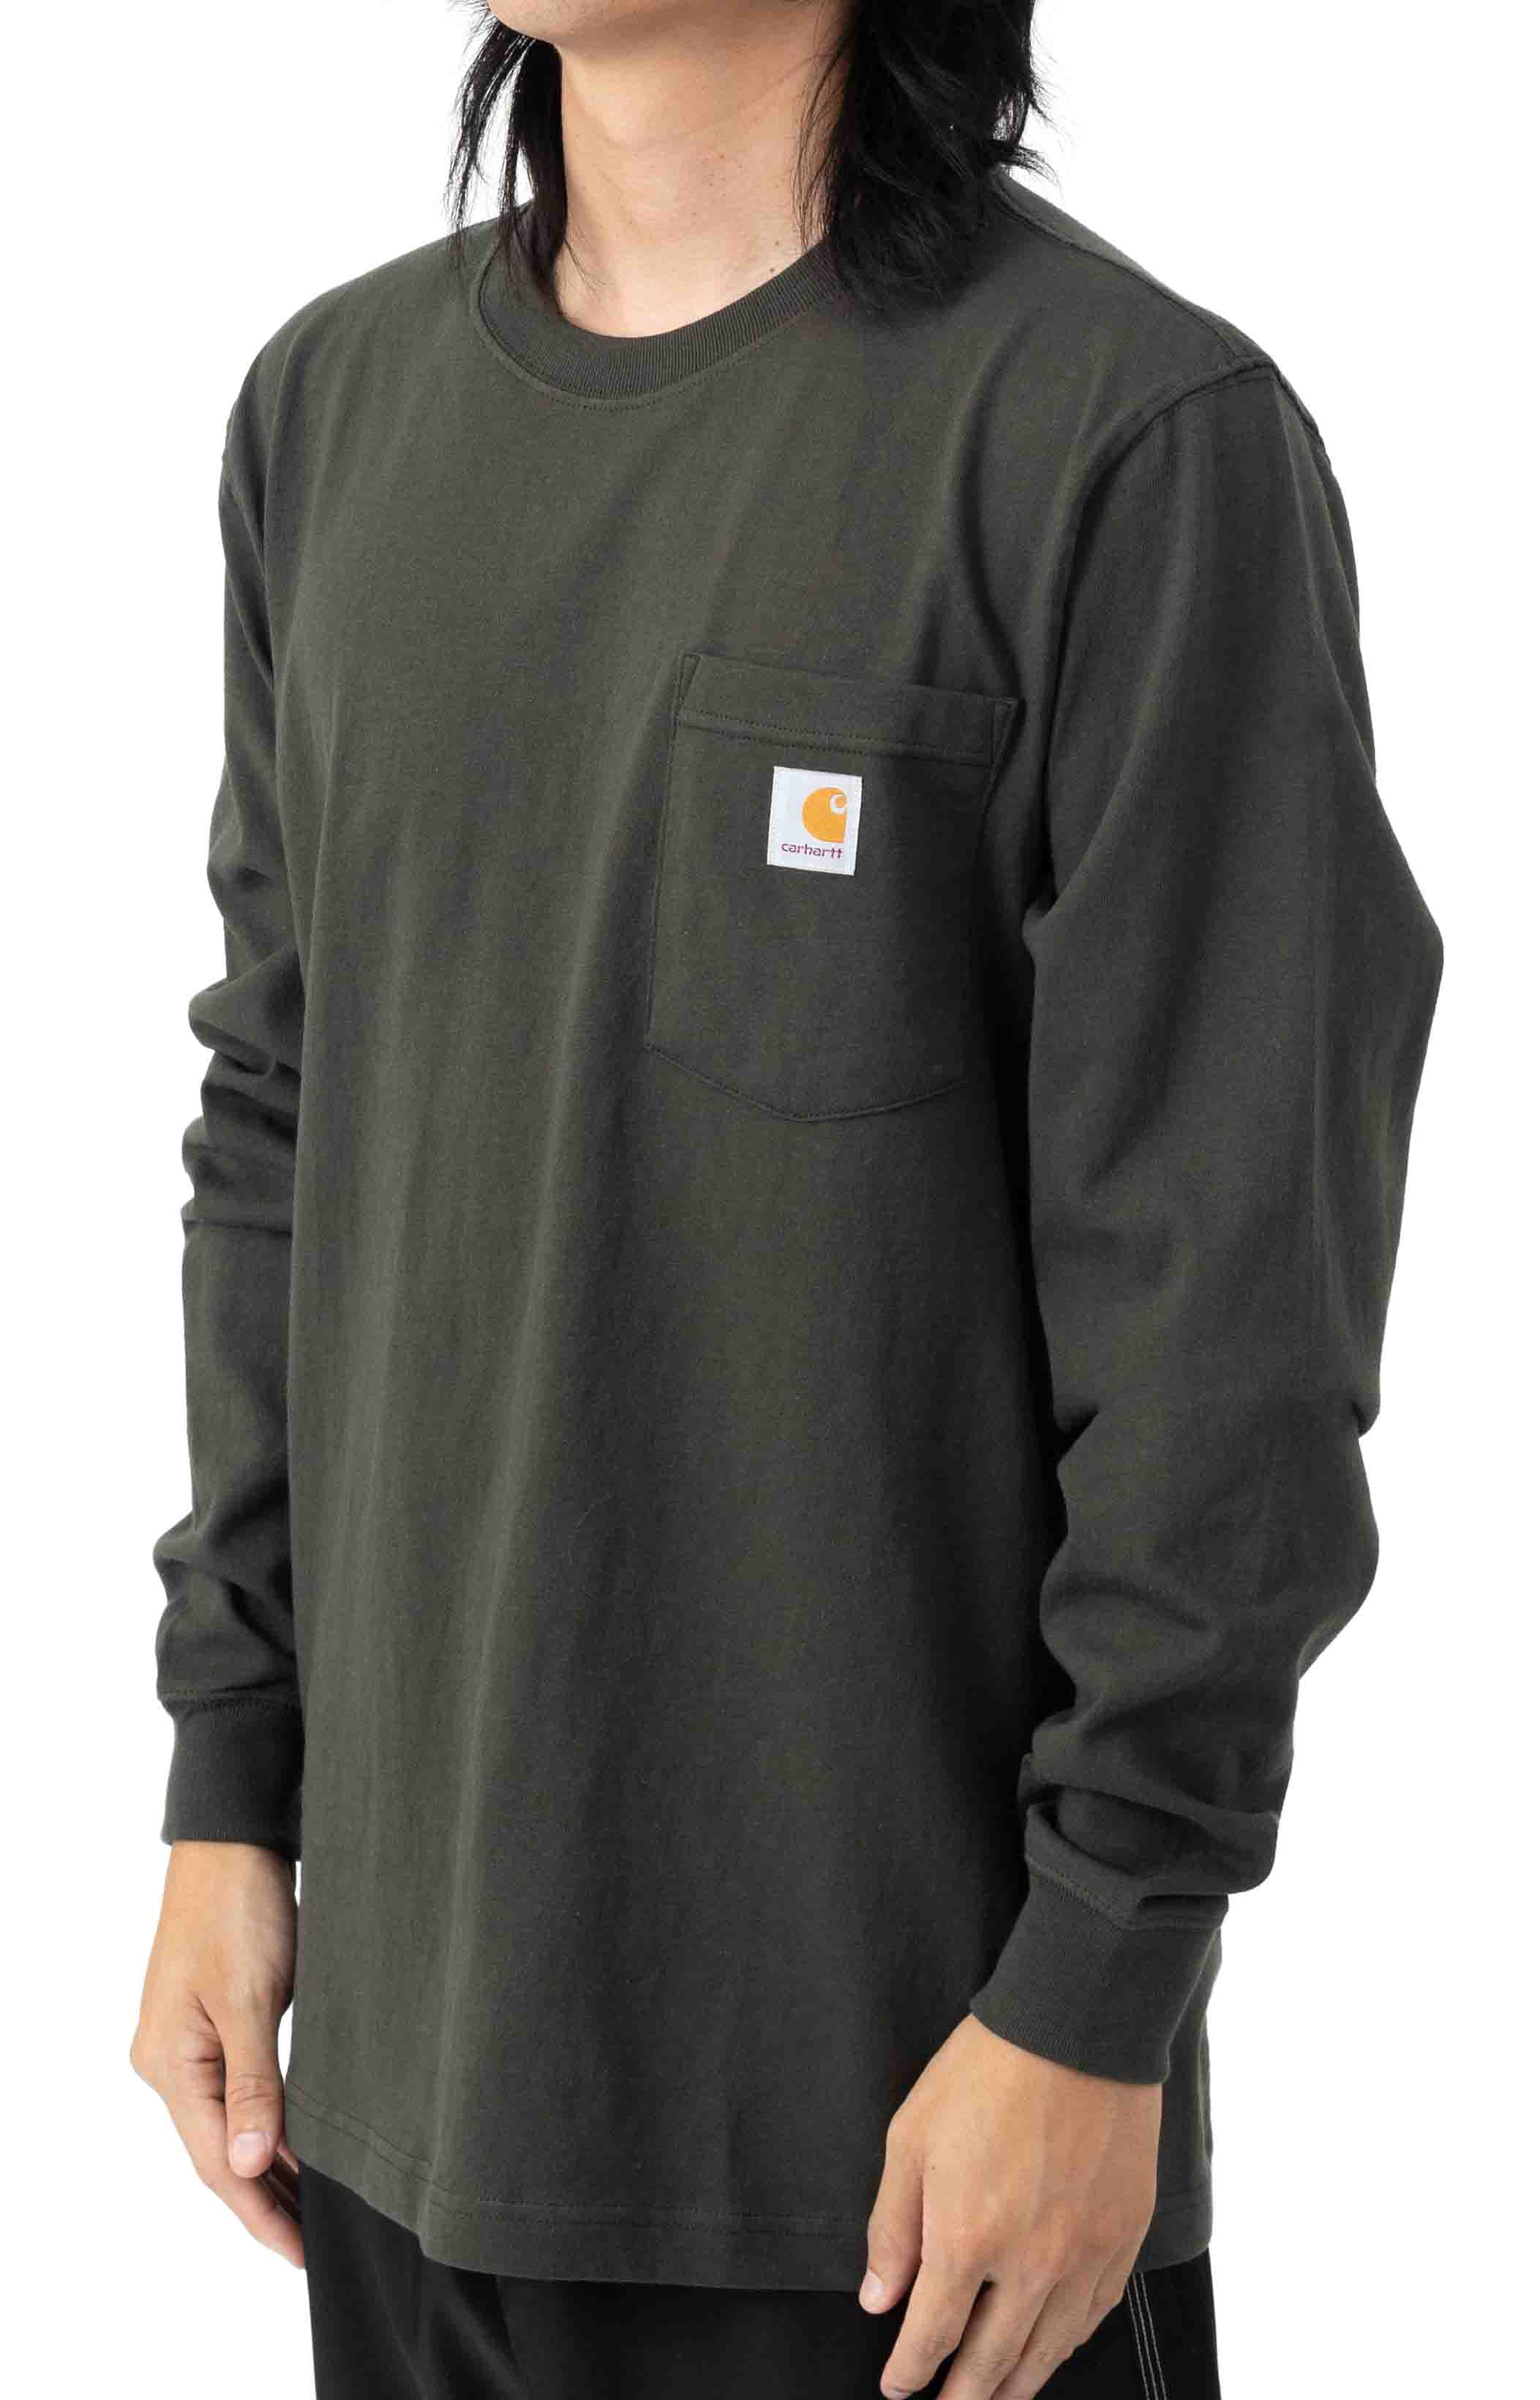 (104895) Relaxed Fit Heavyweight LS Pocket Craftsman Graphic T-Shirt - Peat 3